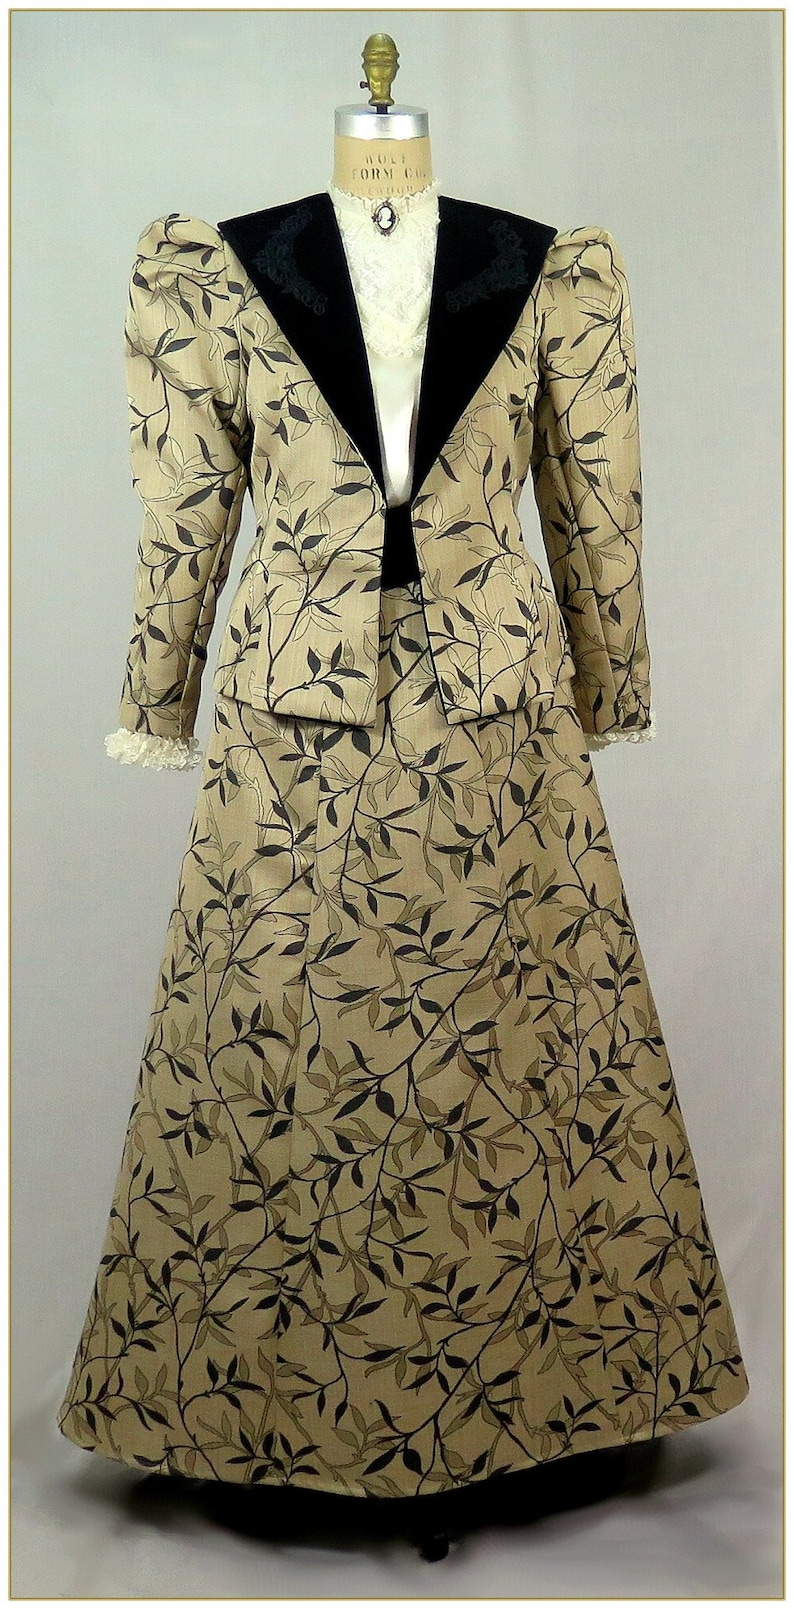 Vintage Tea Dresses, Floral Tea Dresses, Tea Length Dresses 1900-1910 Edwardian Victorian Leaf and Vine Jacket $92.00 AT vintagedancer.com